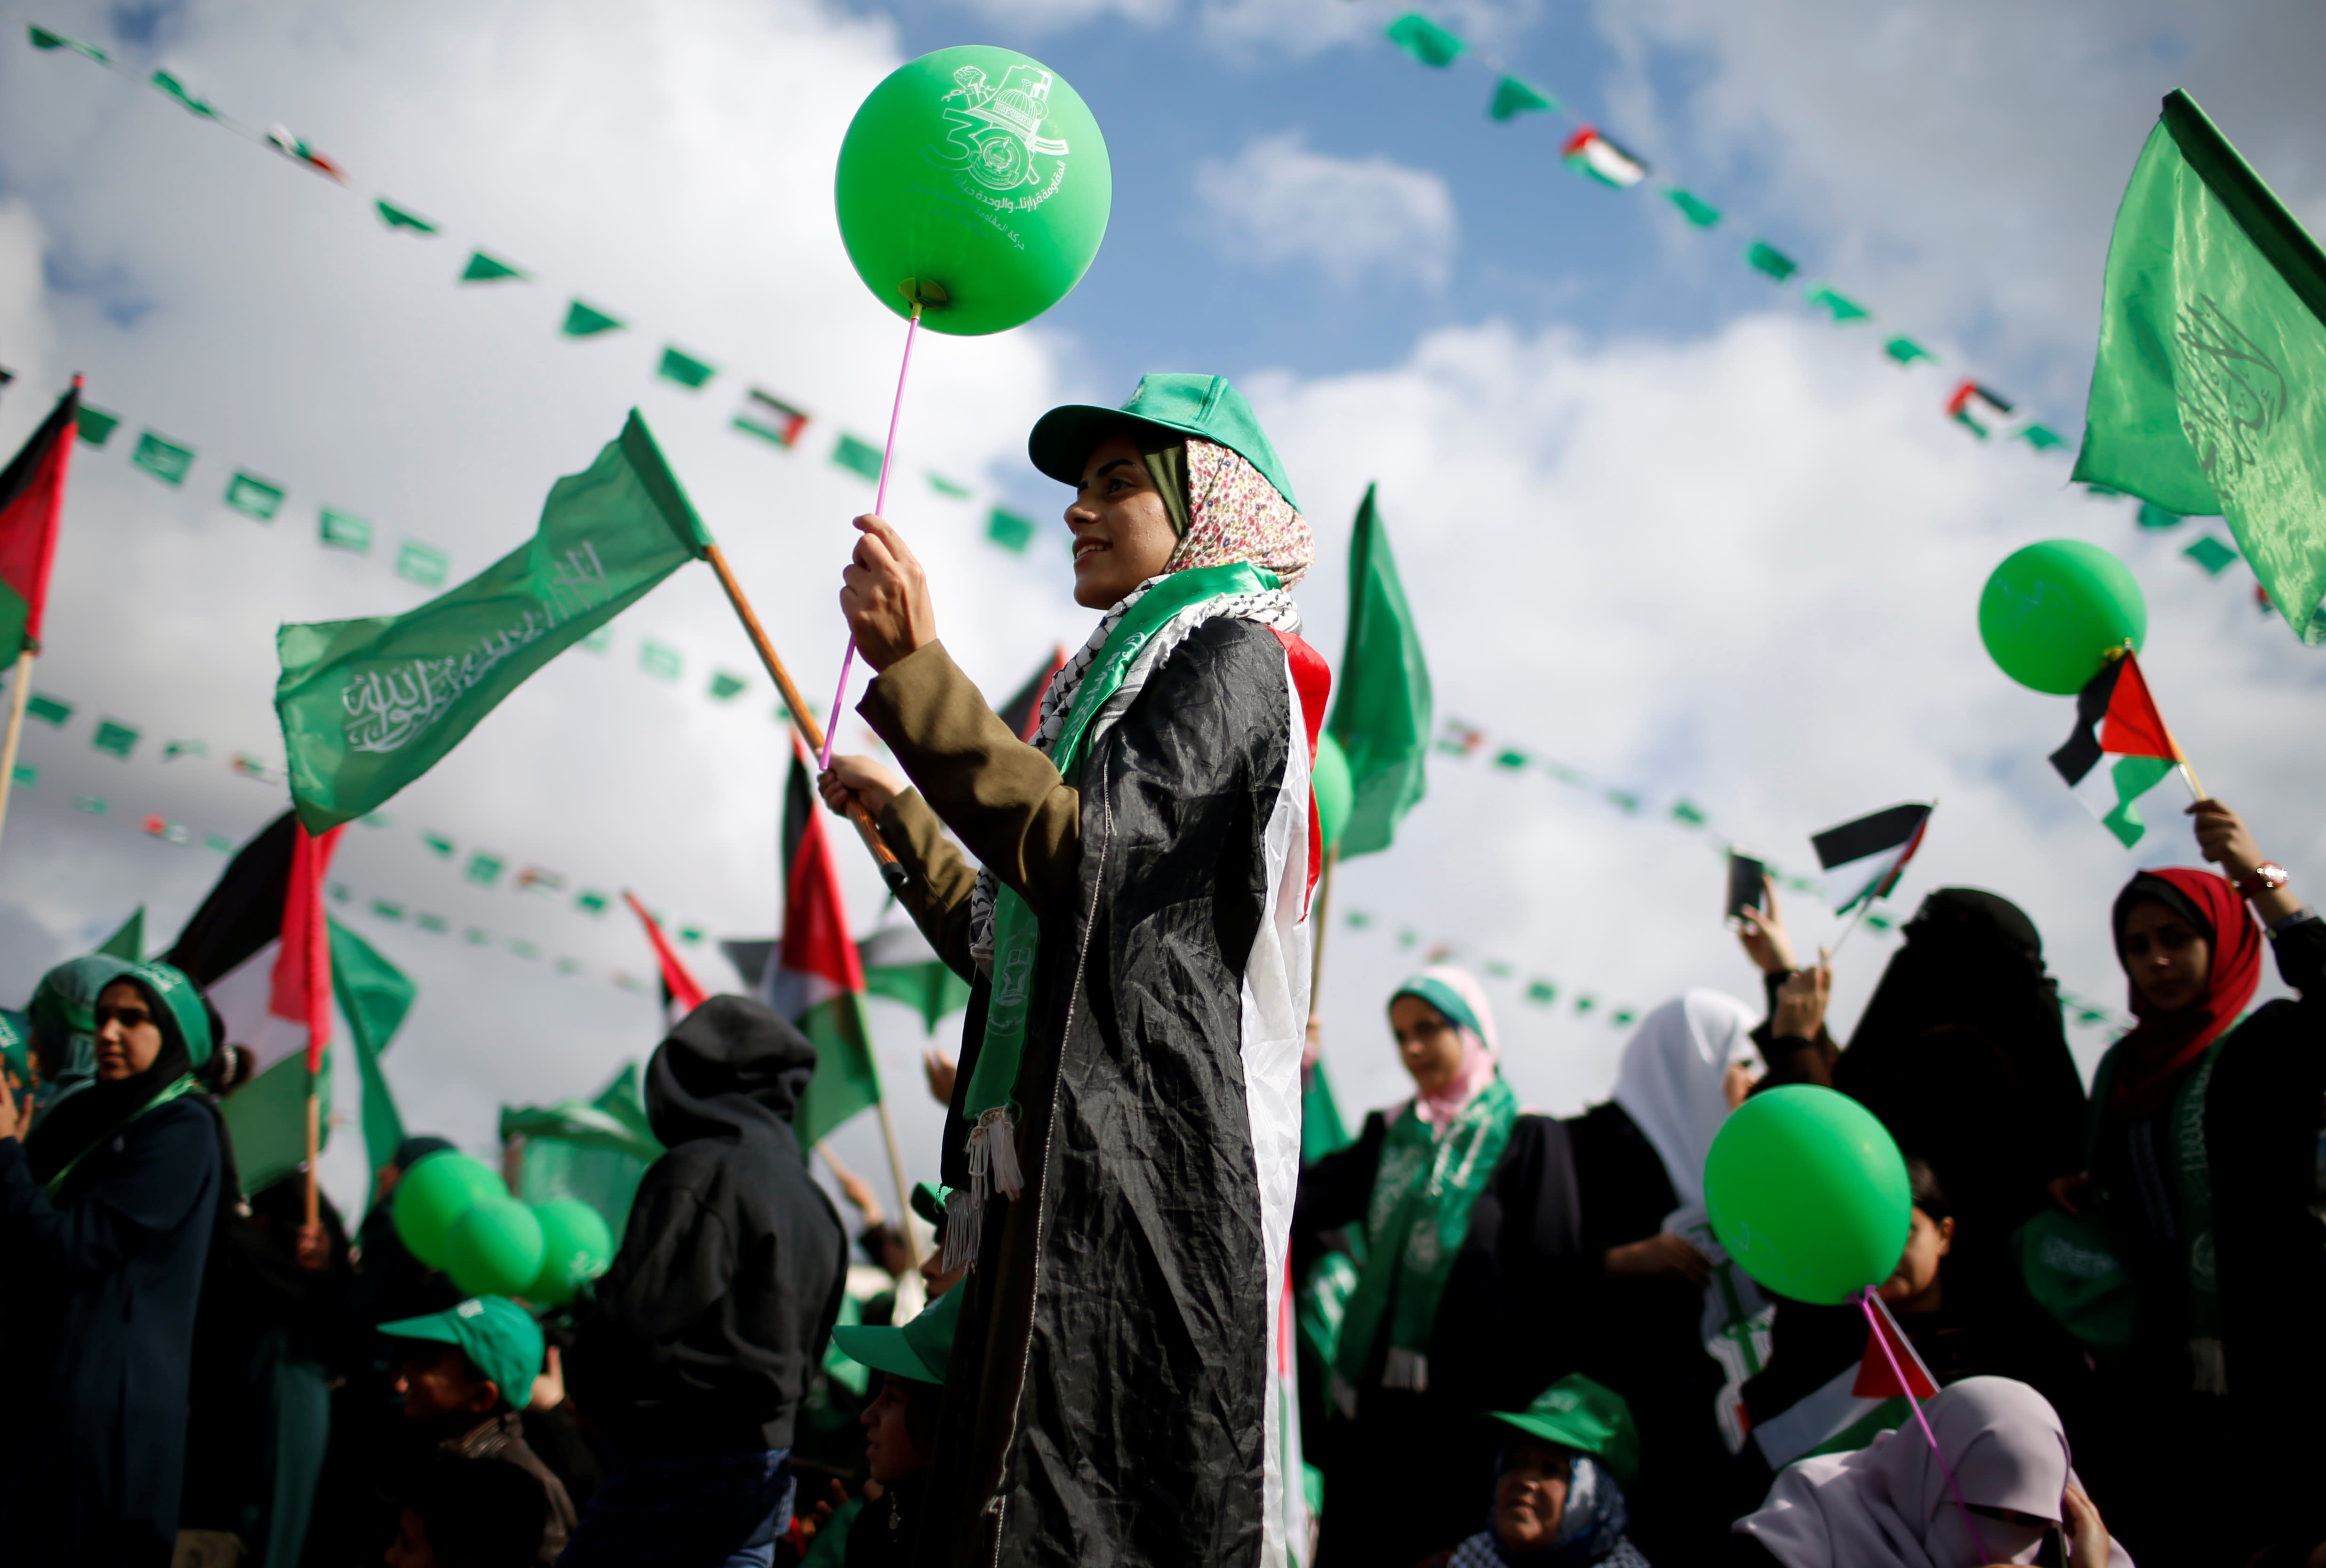 Palestinians supporting Hamas take part in a rally marking the 30th anniversary of Hamas' founding in Gaza City, December 14, 2017 (MOHAMMED SALEM/REUTERS)